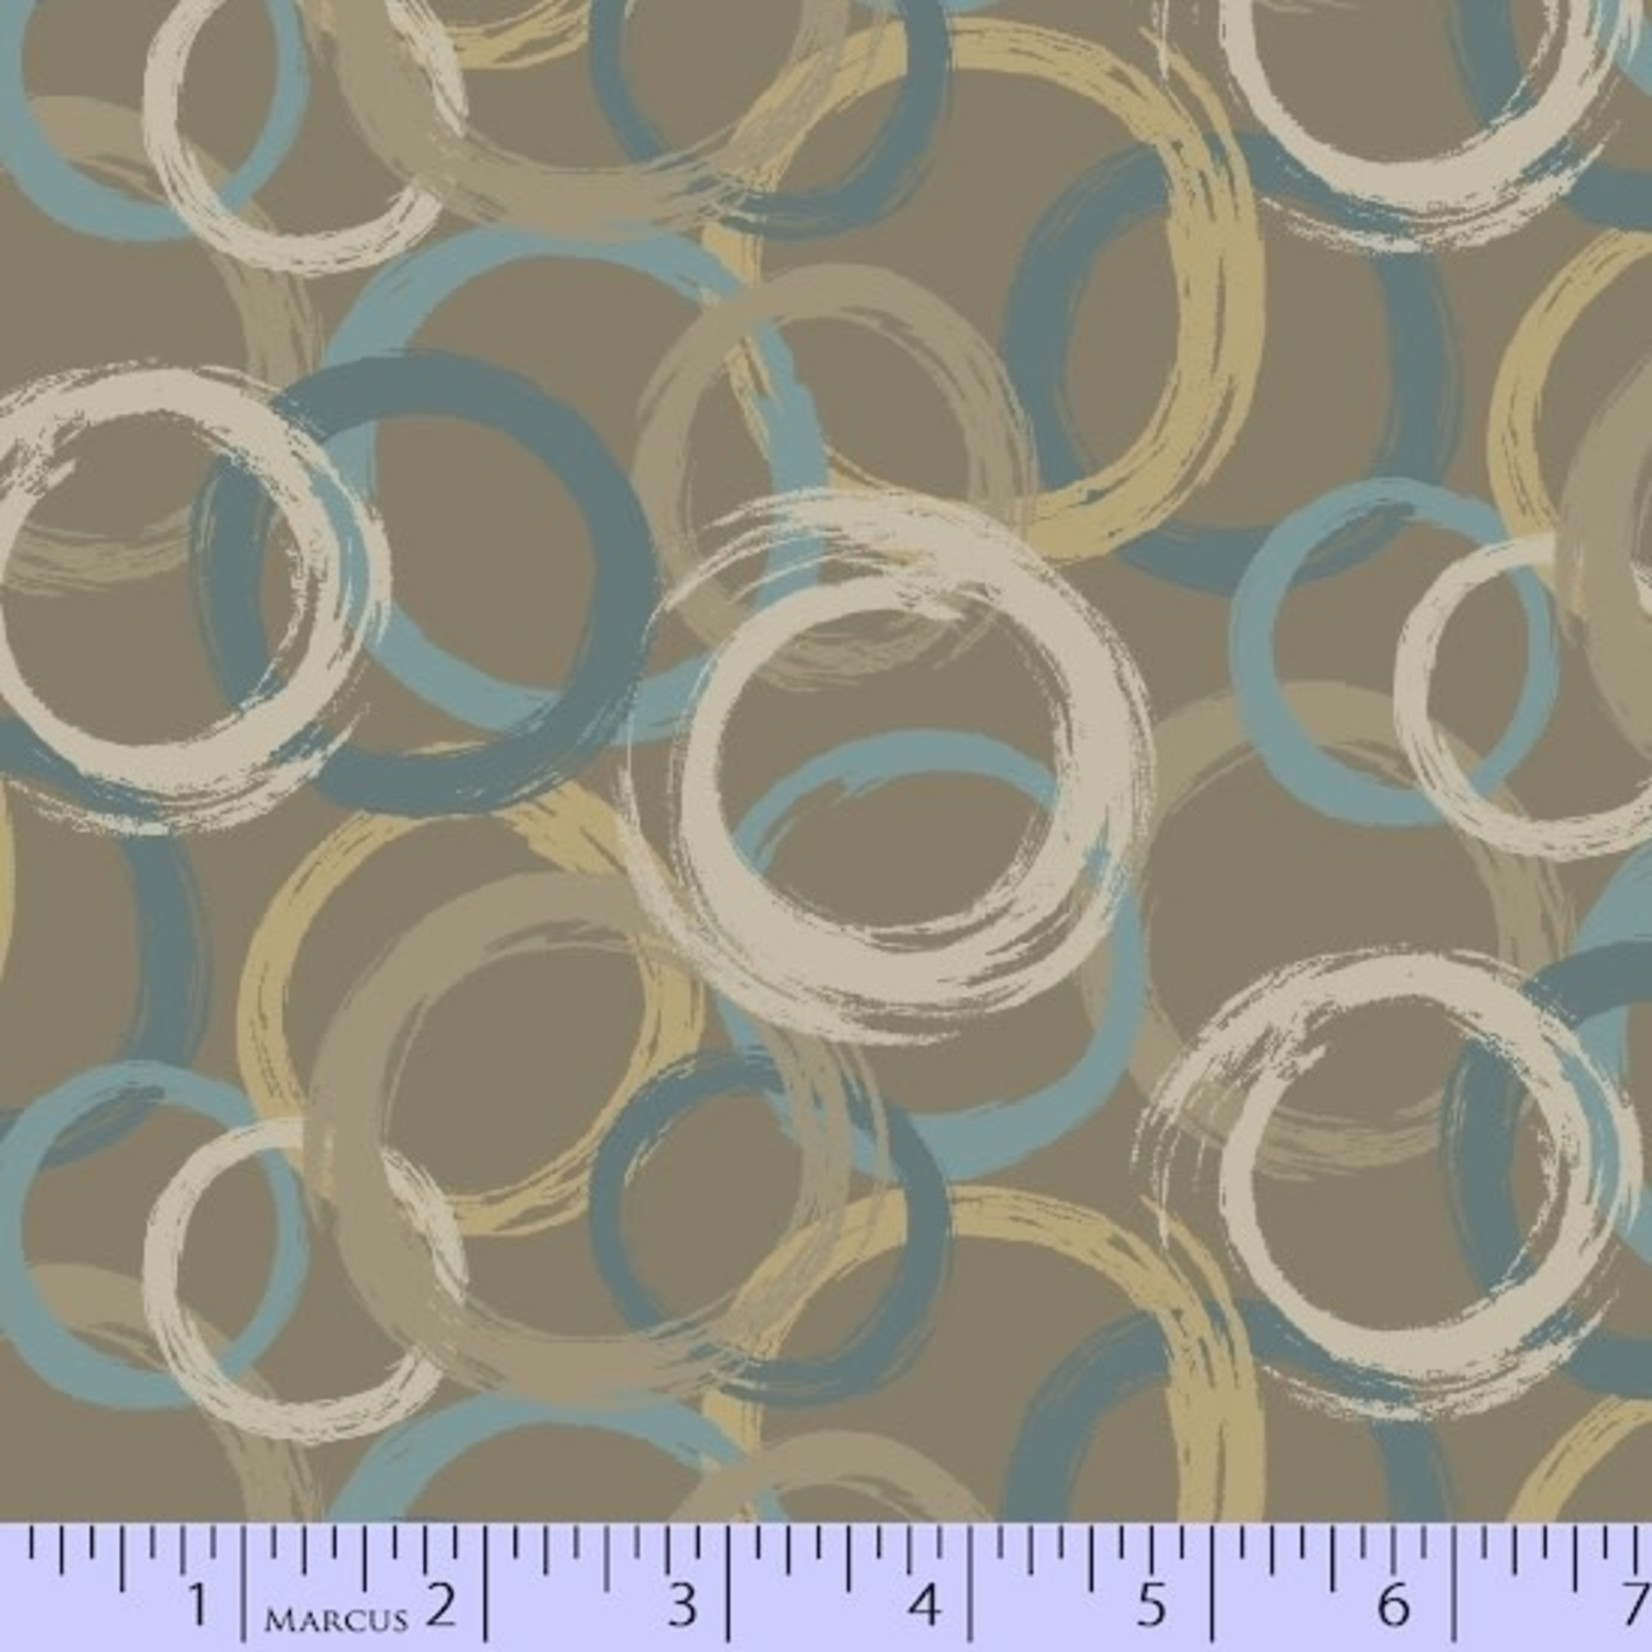 Marcus Fabrics In The Round - Large Rings - Brown